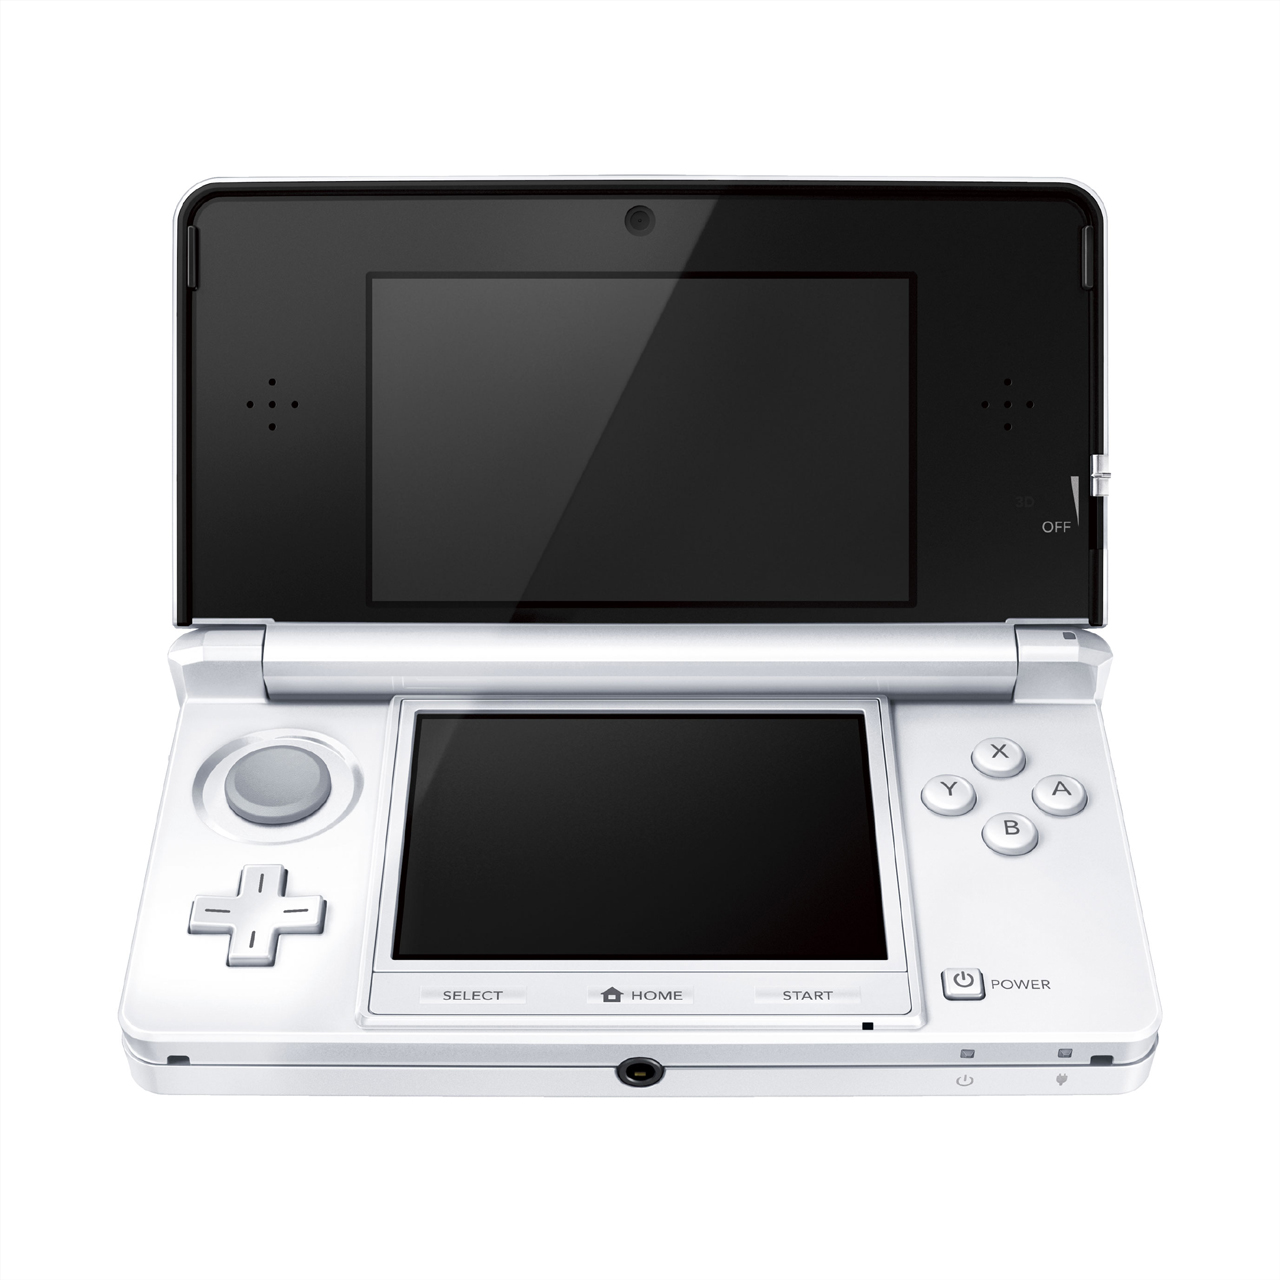 Black And White Nintendo 3ds Consoles To Be Discontinued In Japan New 3 Ds Xl Metallic Ice The Original Cosmo Will Soon